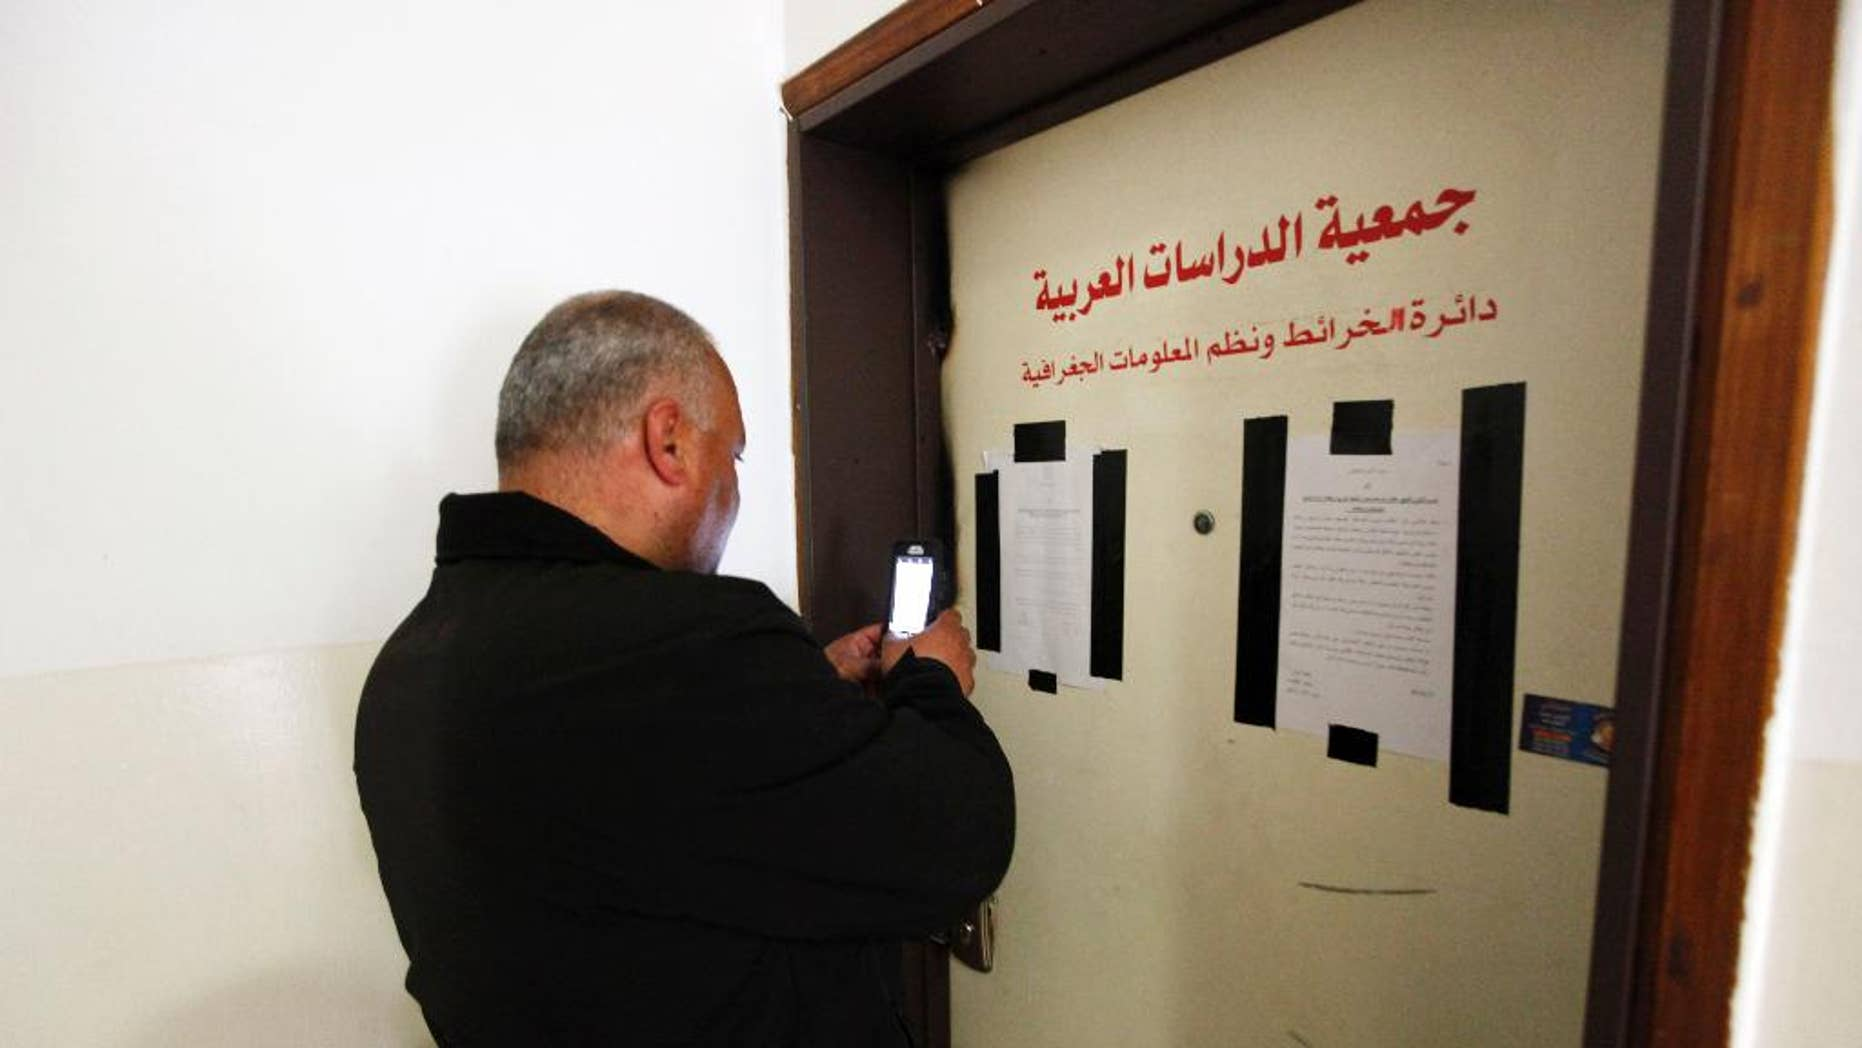 A man takes a photo of the sealed offices of Khalil Tufagji, a prominent Palestinian cartographer, in east Jerusalem, Tuesday, March 14, 2017. Israeli police have raided Tufagji's  office accusing him of working illegally on behalf of the Palestinian Authority. In a statement, police accused Tufagji of conducting research for the Palestinian Authority, including gathering information on Israeli development of east Jerusalem. His office is to remain closed for six months. (AP Photo/Mahmoud Illean)